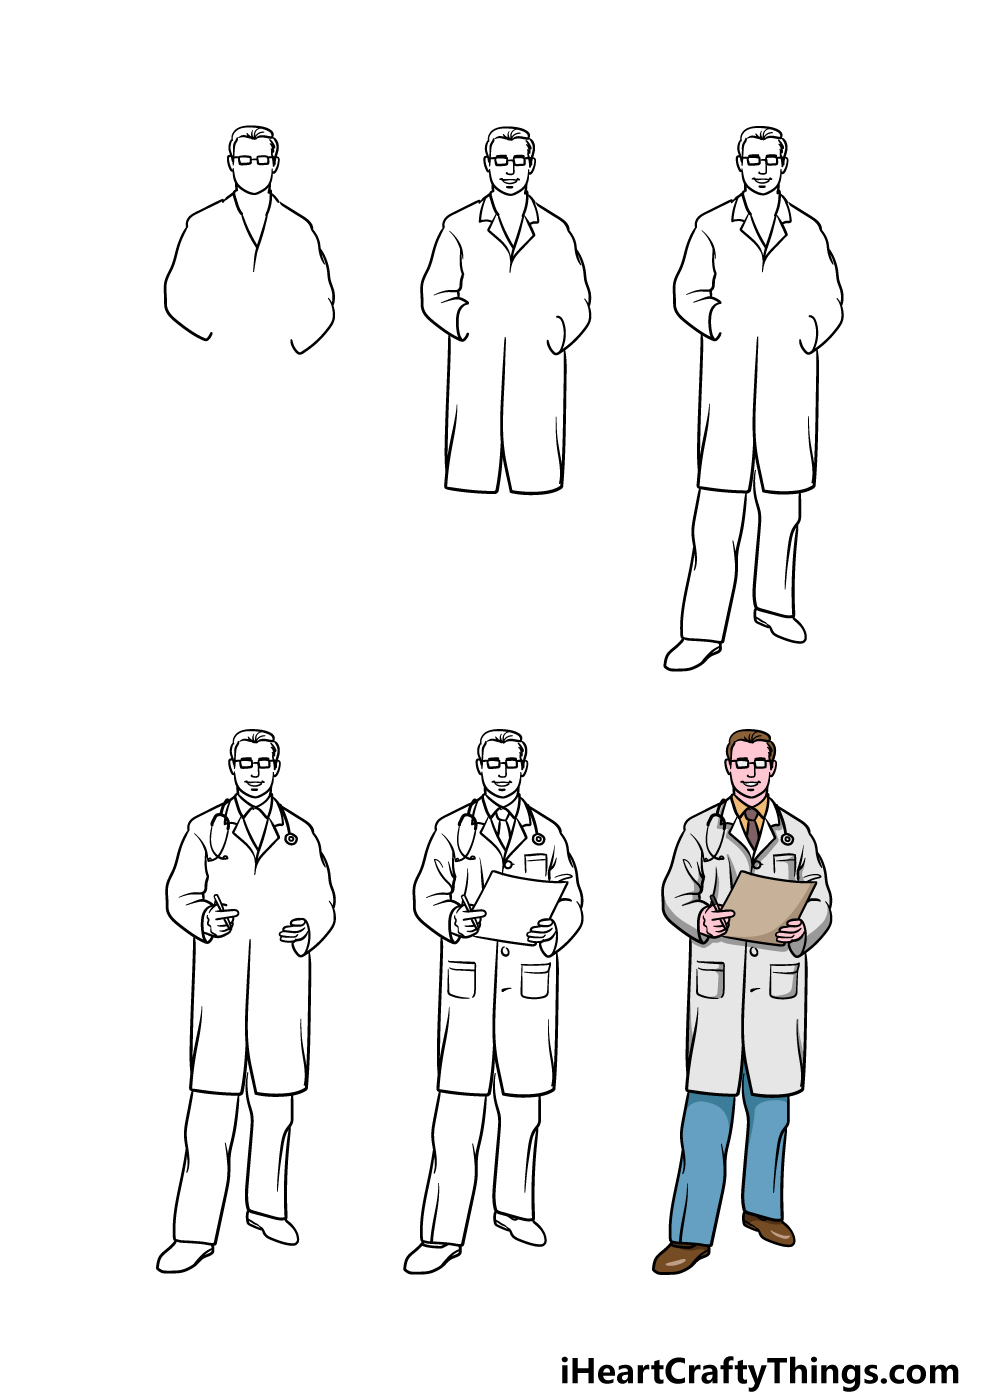 how to draw a doctor in 6 steps